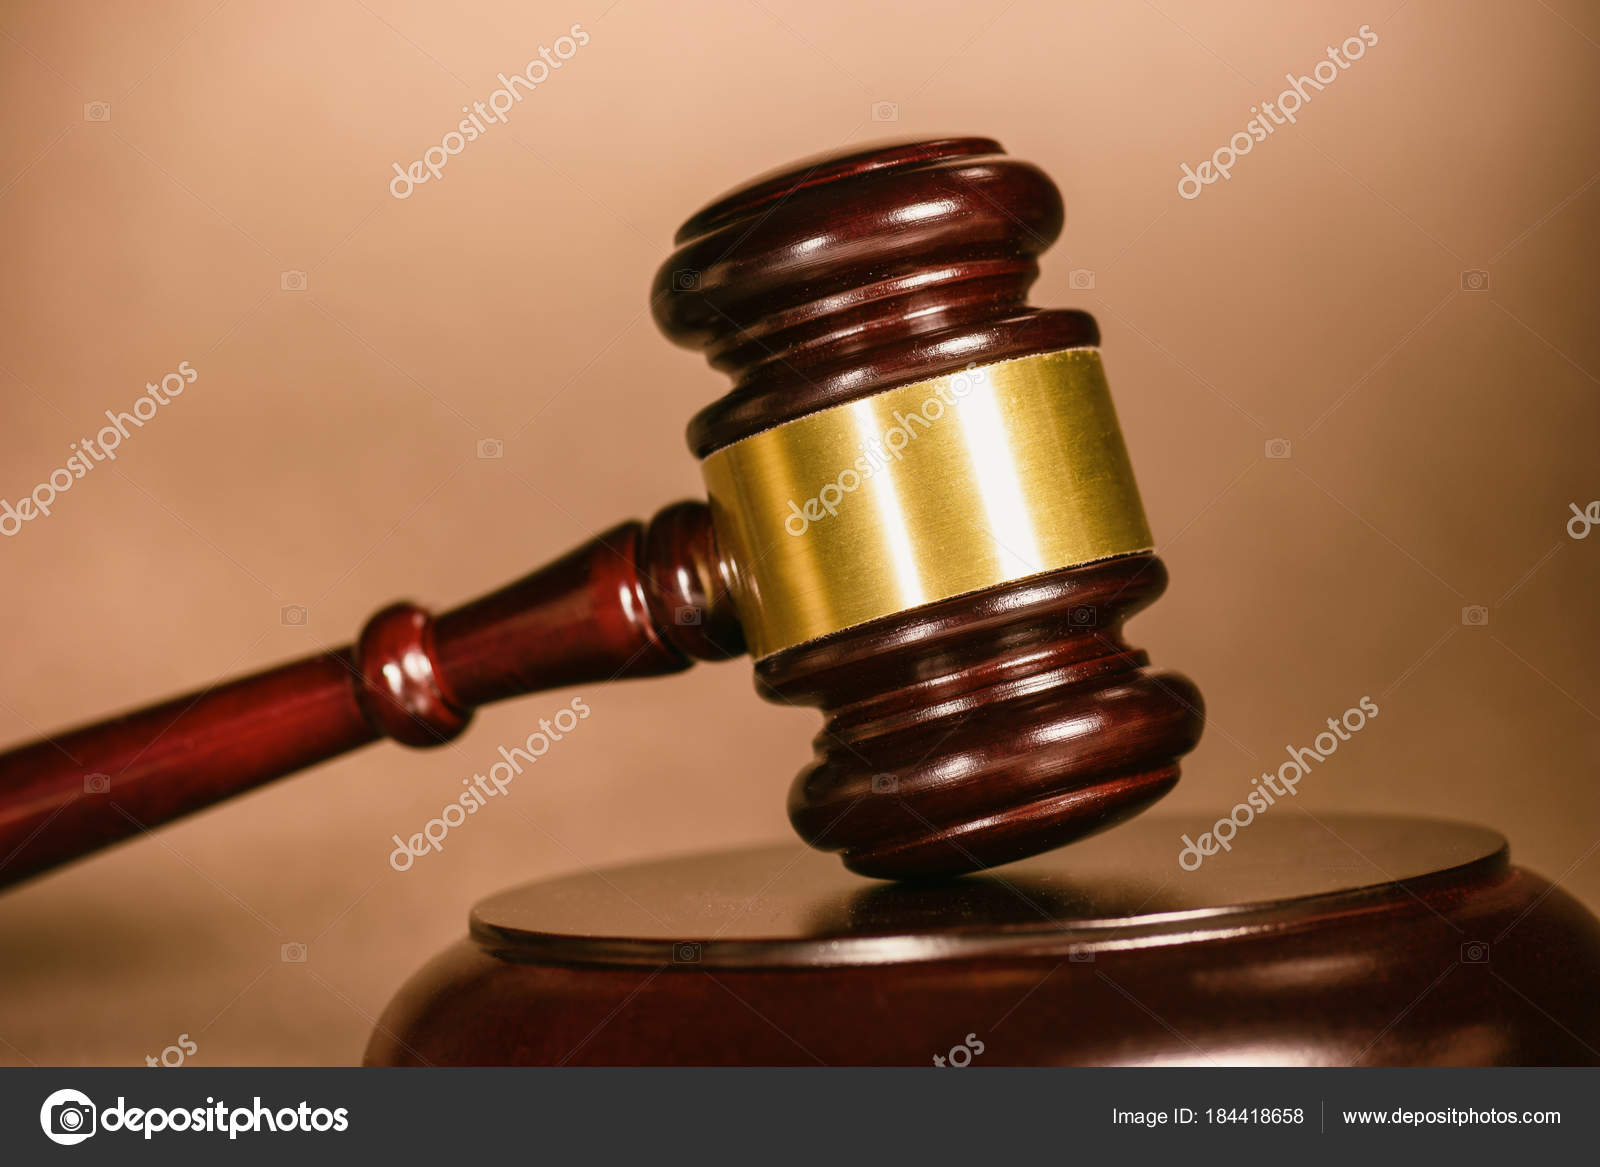 A Judge Gavel On Table Against Brown Background Ideal For Websites And Magazines Layouts Photo By